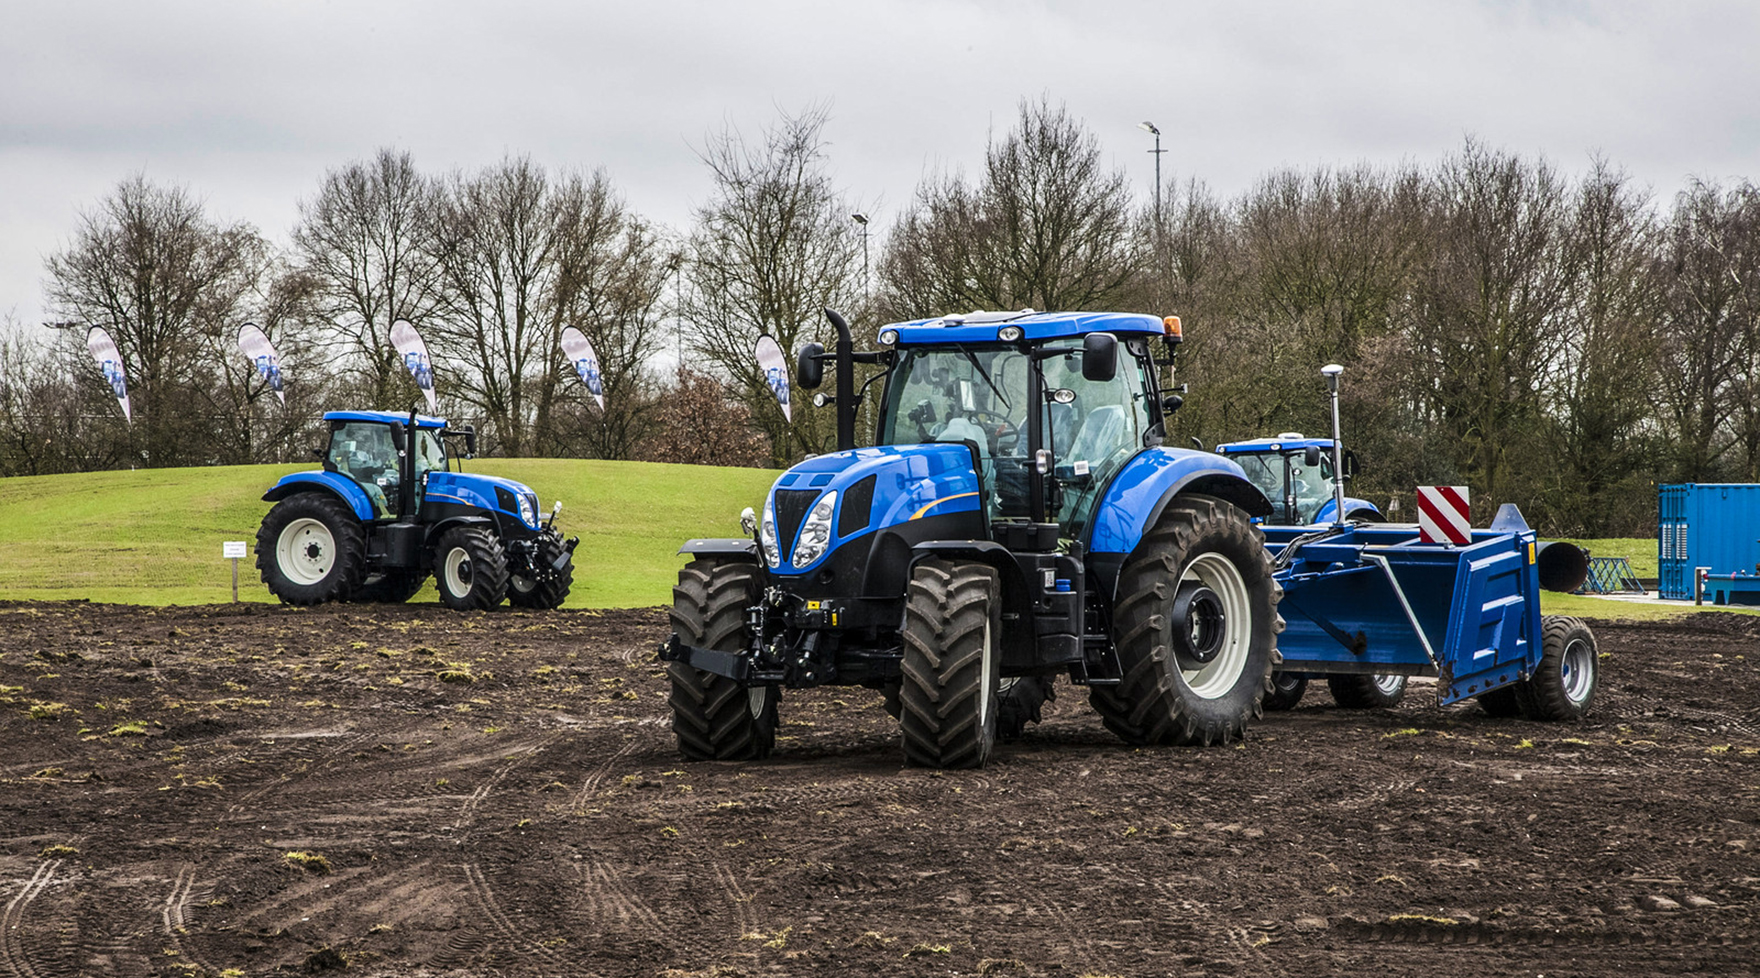 Spare-parts for New Holland farm equipment. Agricultural Tractors, Forage Harvesters, Combine Harvesters, Balers, construction machinery, Telehandlers, front loaders.